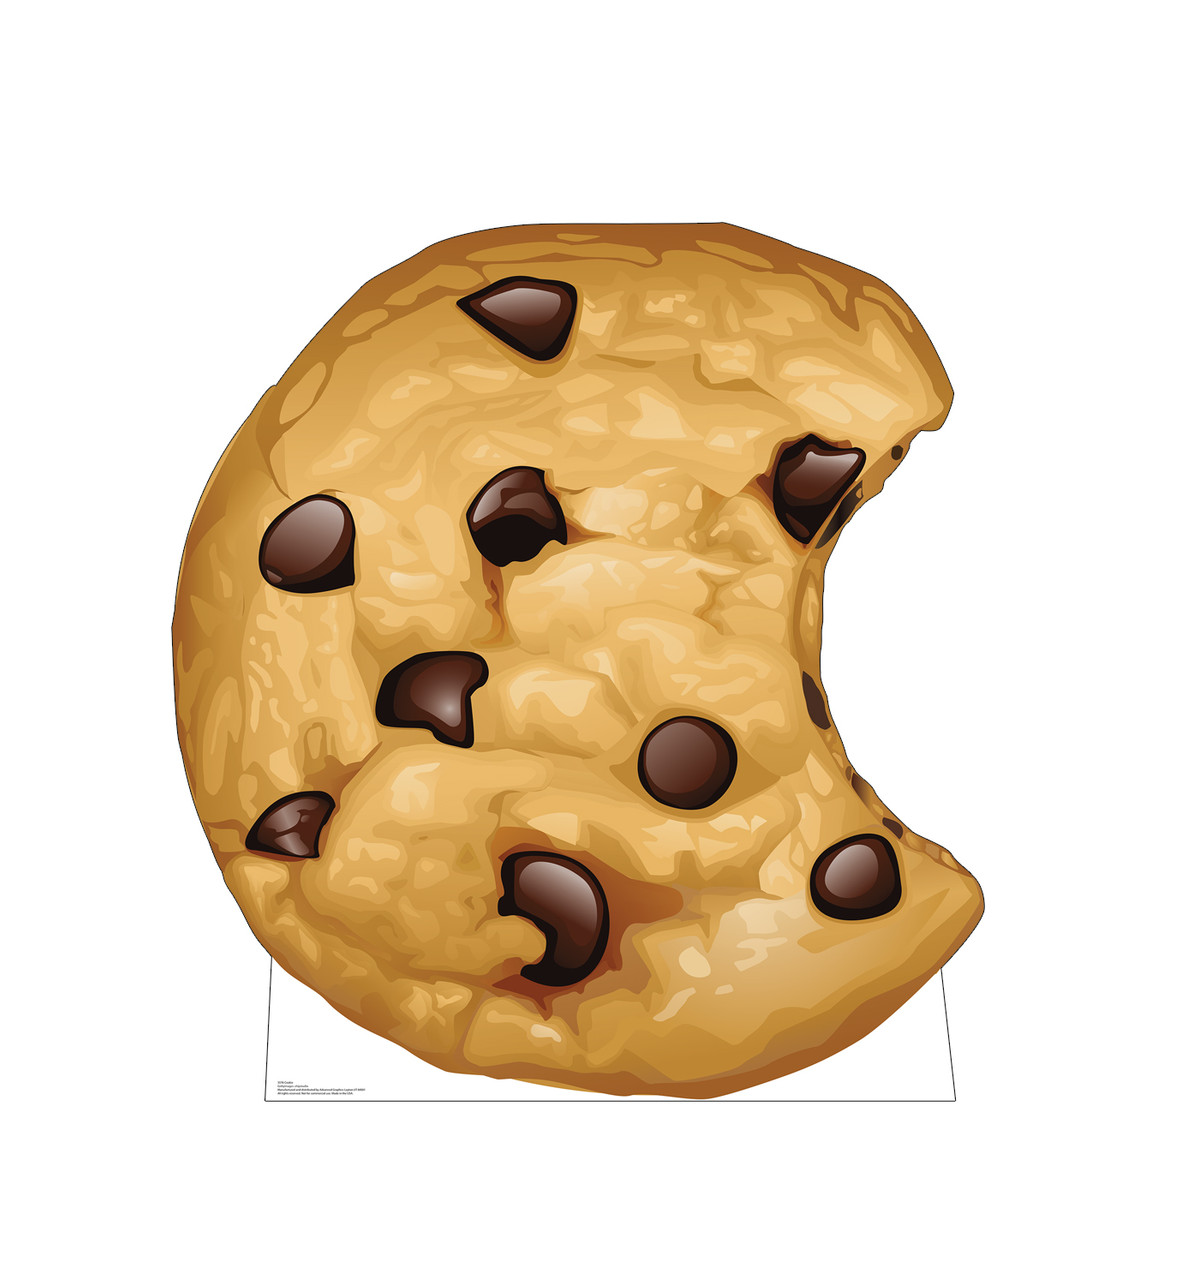 Life-size cardboard standee of a Chocolate Chip Cookie.